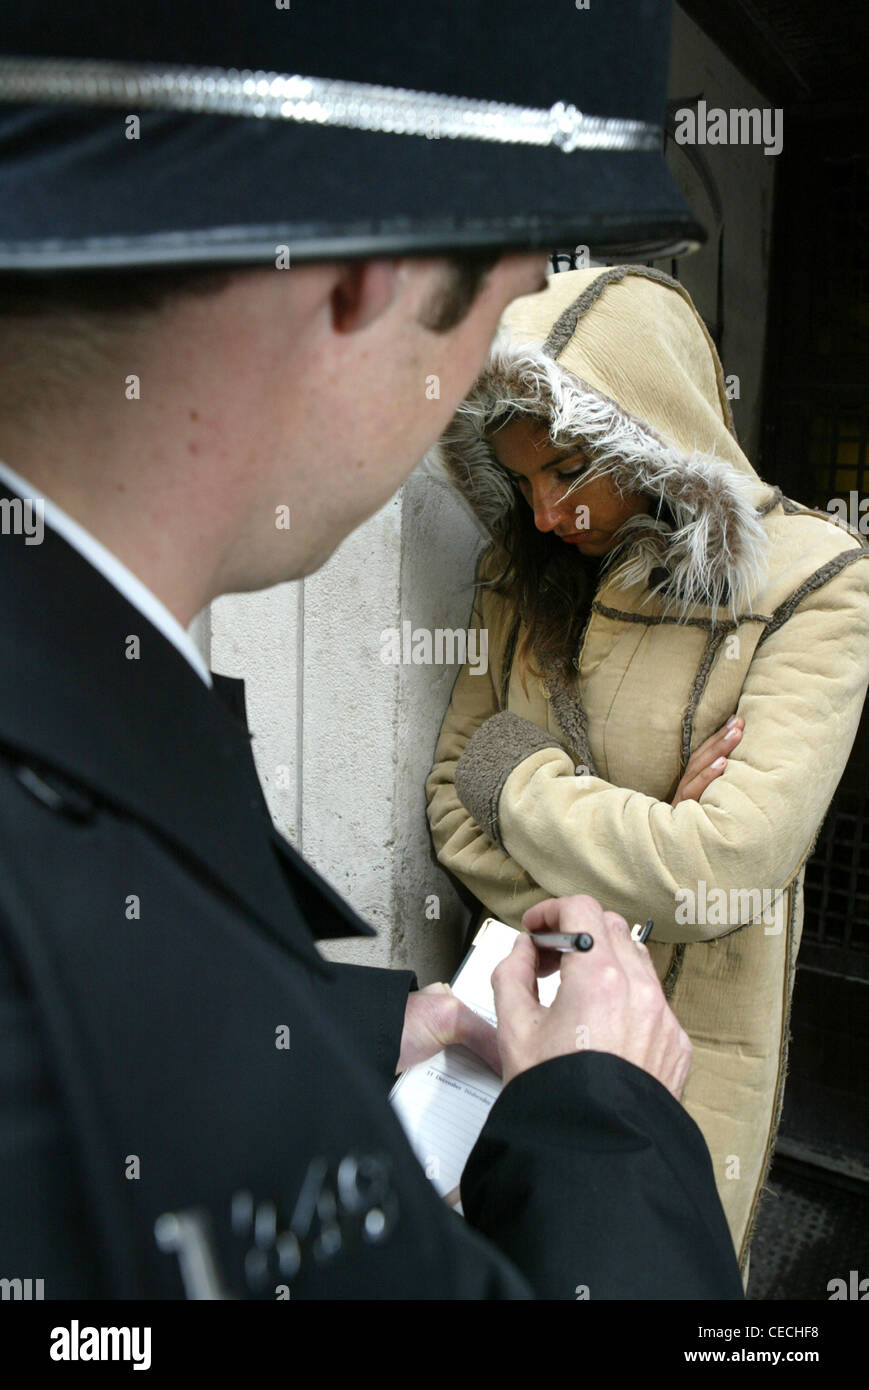 Policeman stops and questions a youth on the streets of London, UK - Stock Image